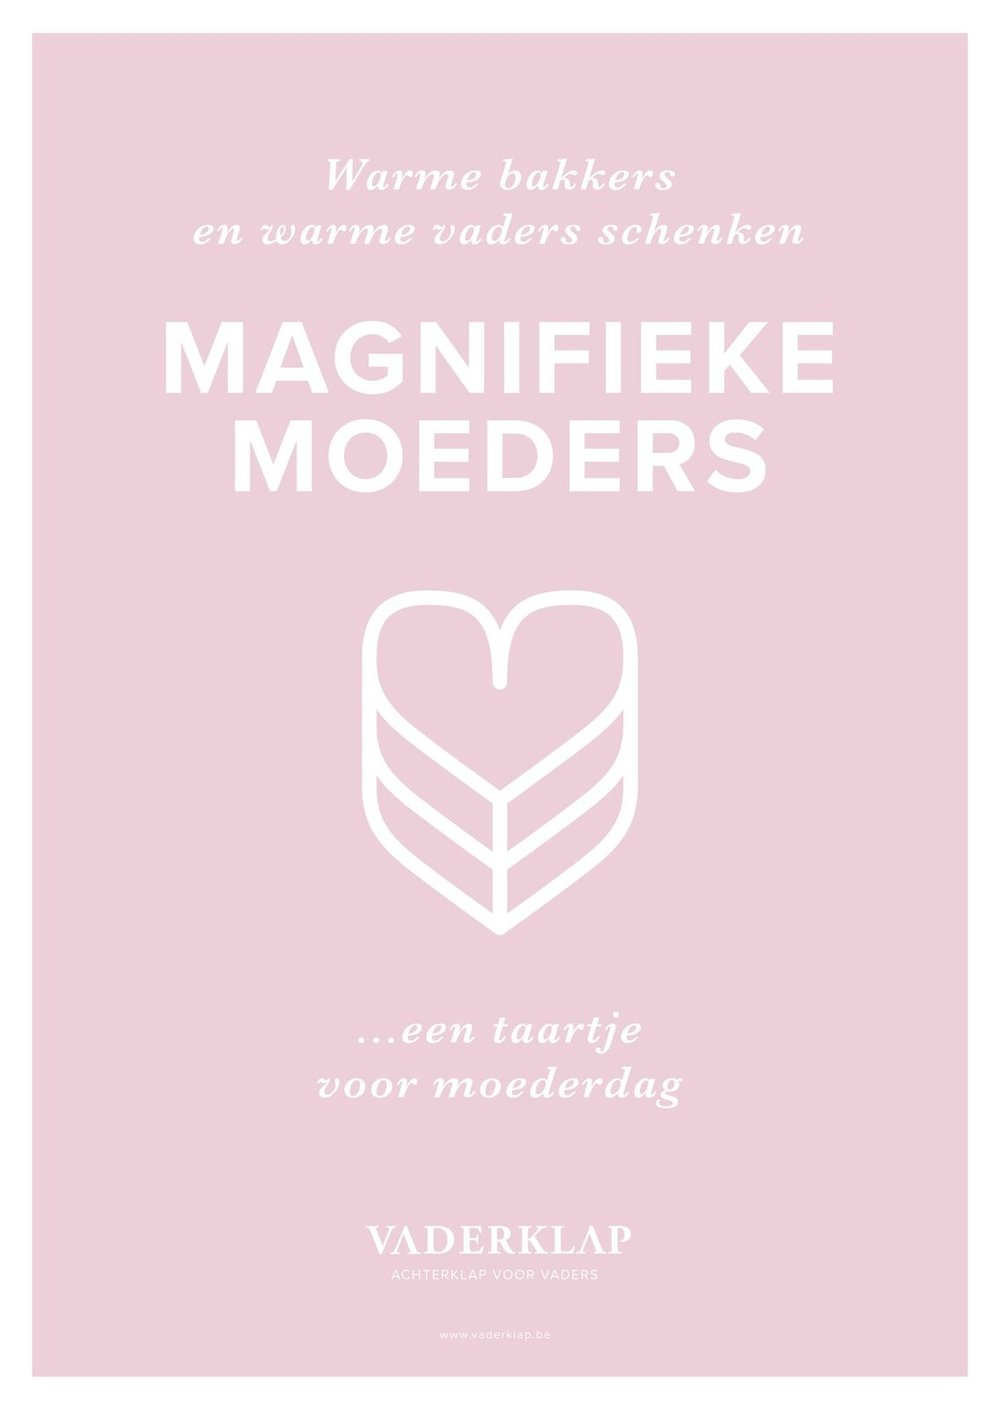 Moederdag_Poster-01_preview.jpeg